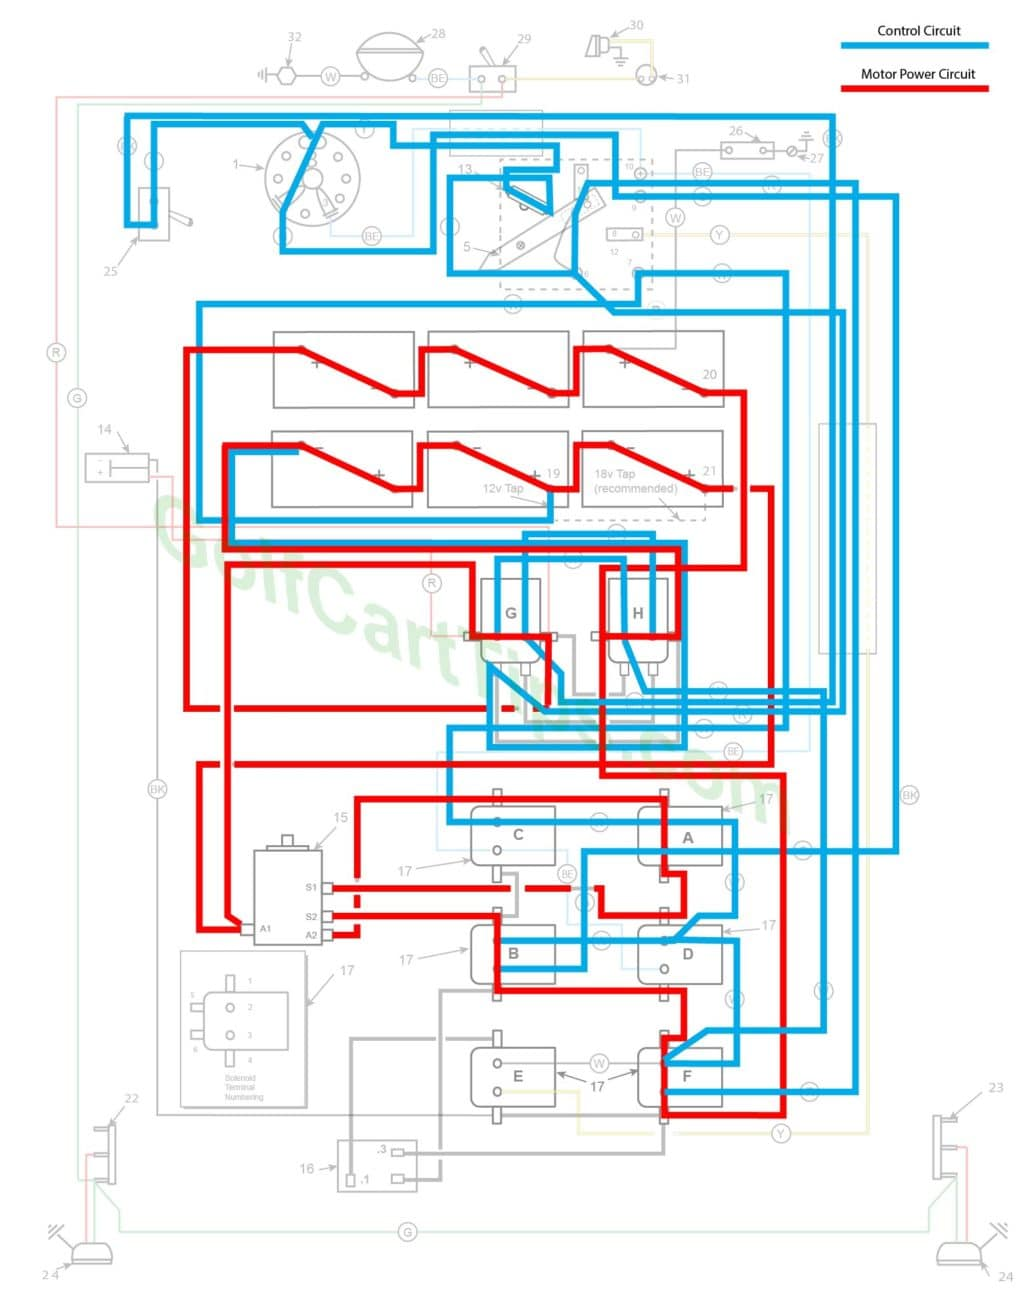 Tf 2322 19661967 Model Dec Electric Wiring Schematic Wiring